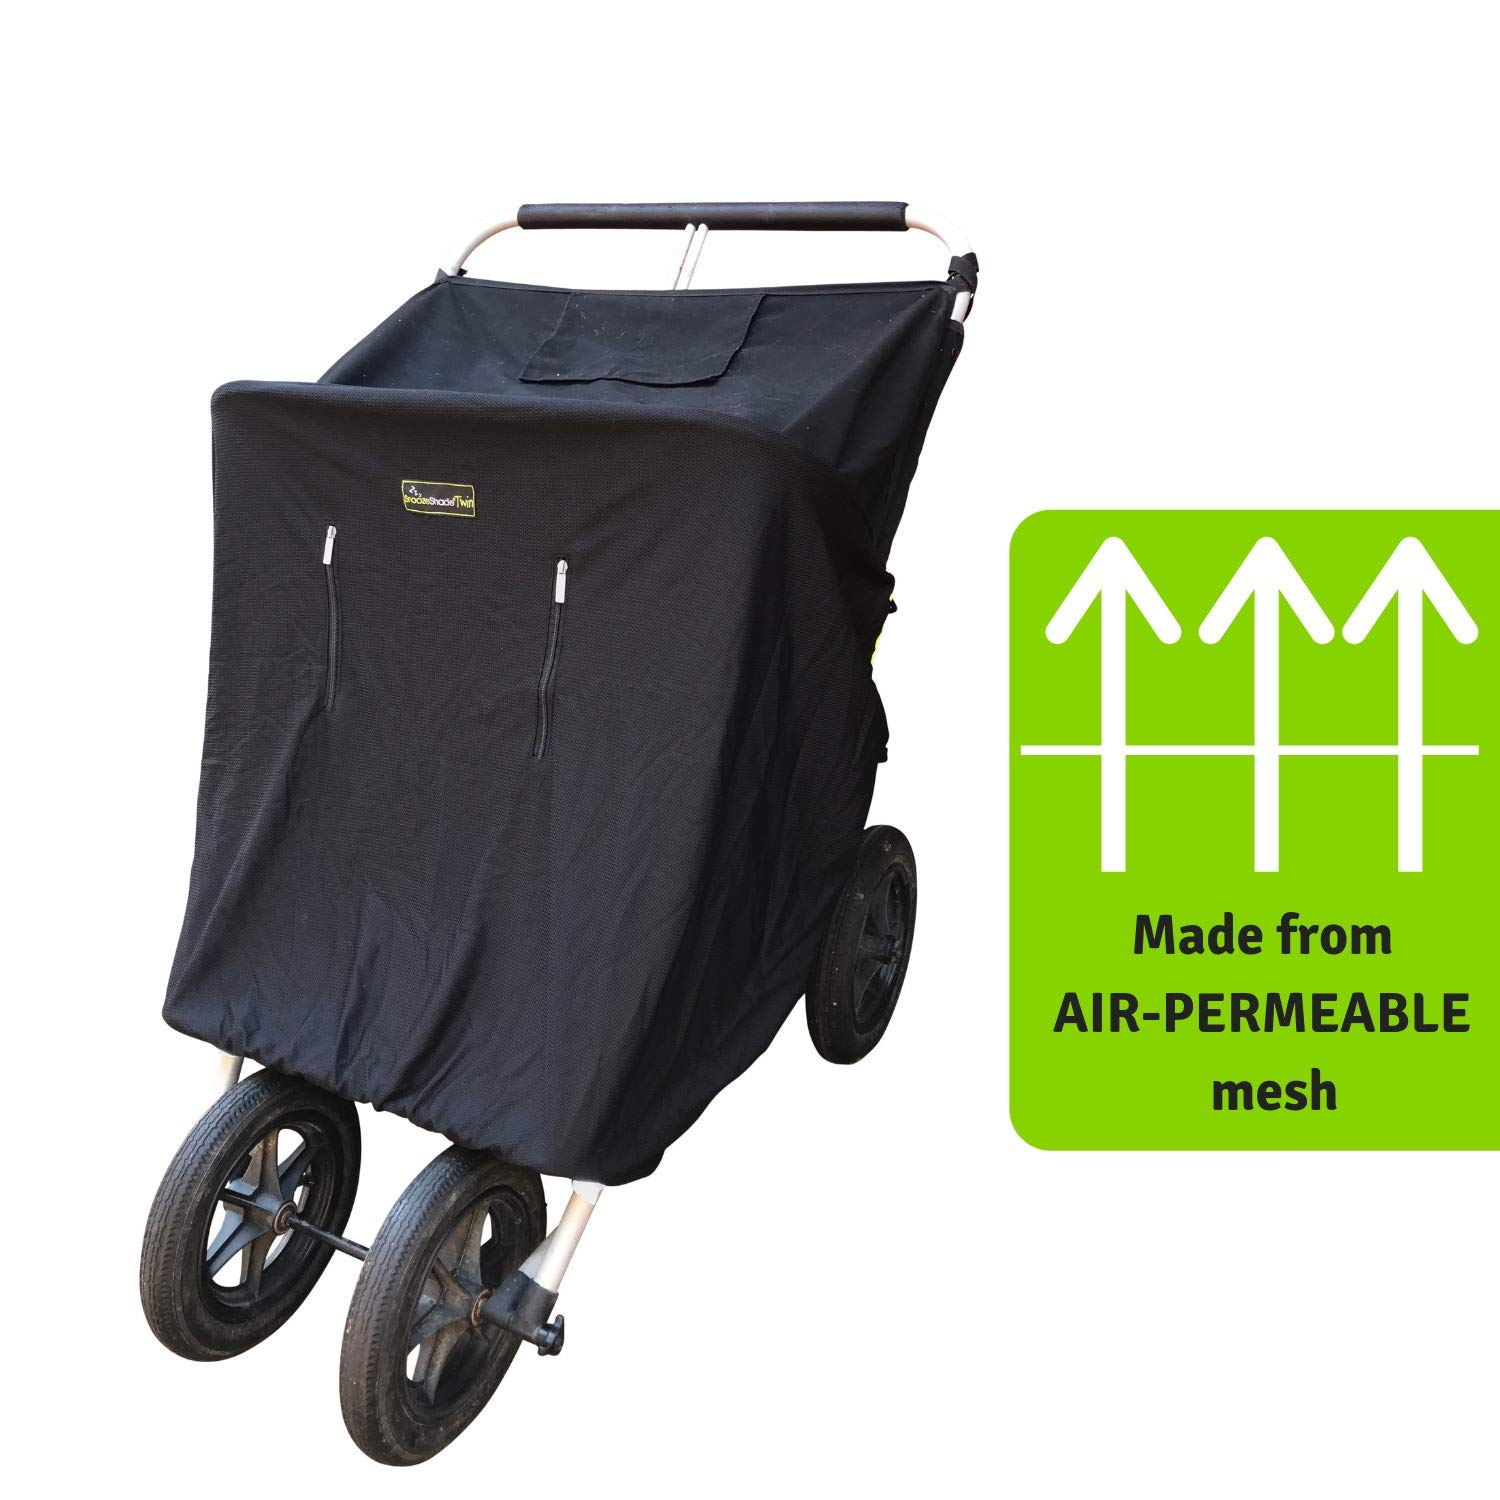 Double Stroller Cover & Sun Shade | Award-Winning Blackout Blind and Baby Sleep Aid | Stops 99% of The Sun's Rays | Lets Your Babies nap Safely Anywhere | Universal Fit | SnoozeShade Twin by SnoozeShade (Image #6)